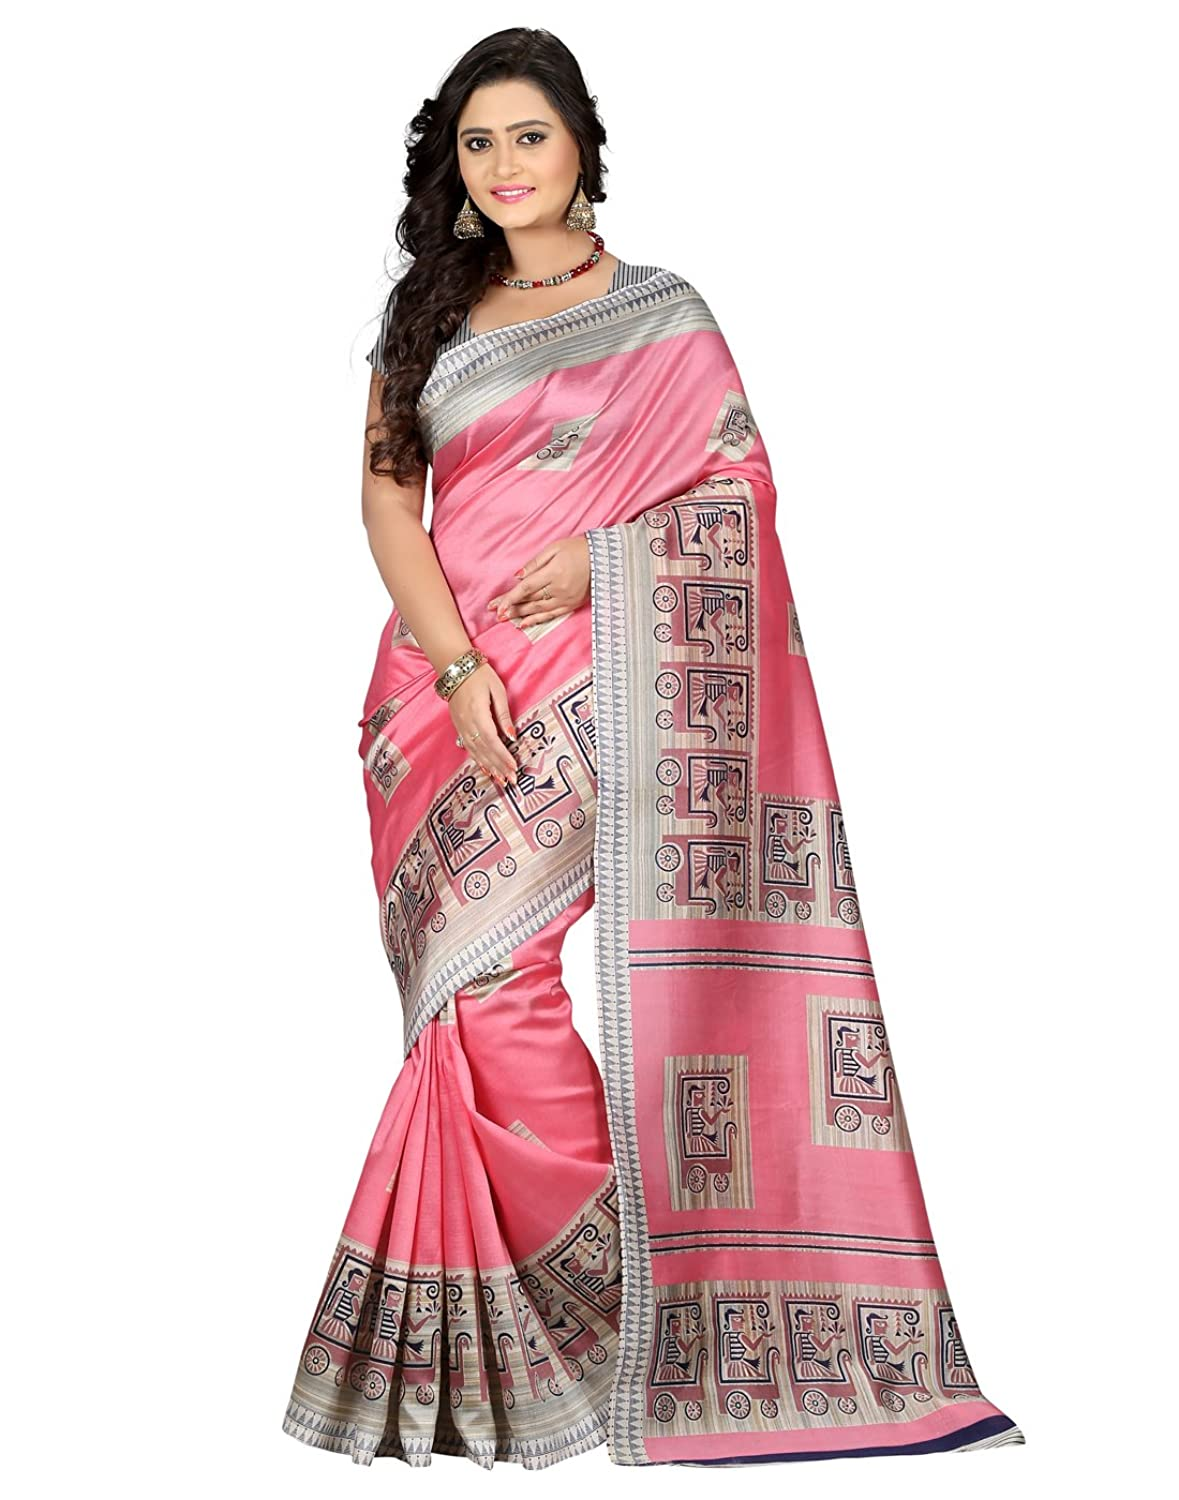 conclusion for a sari sari store Ideas for opening a new indian grocery store accessed june 11, 2018  .